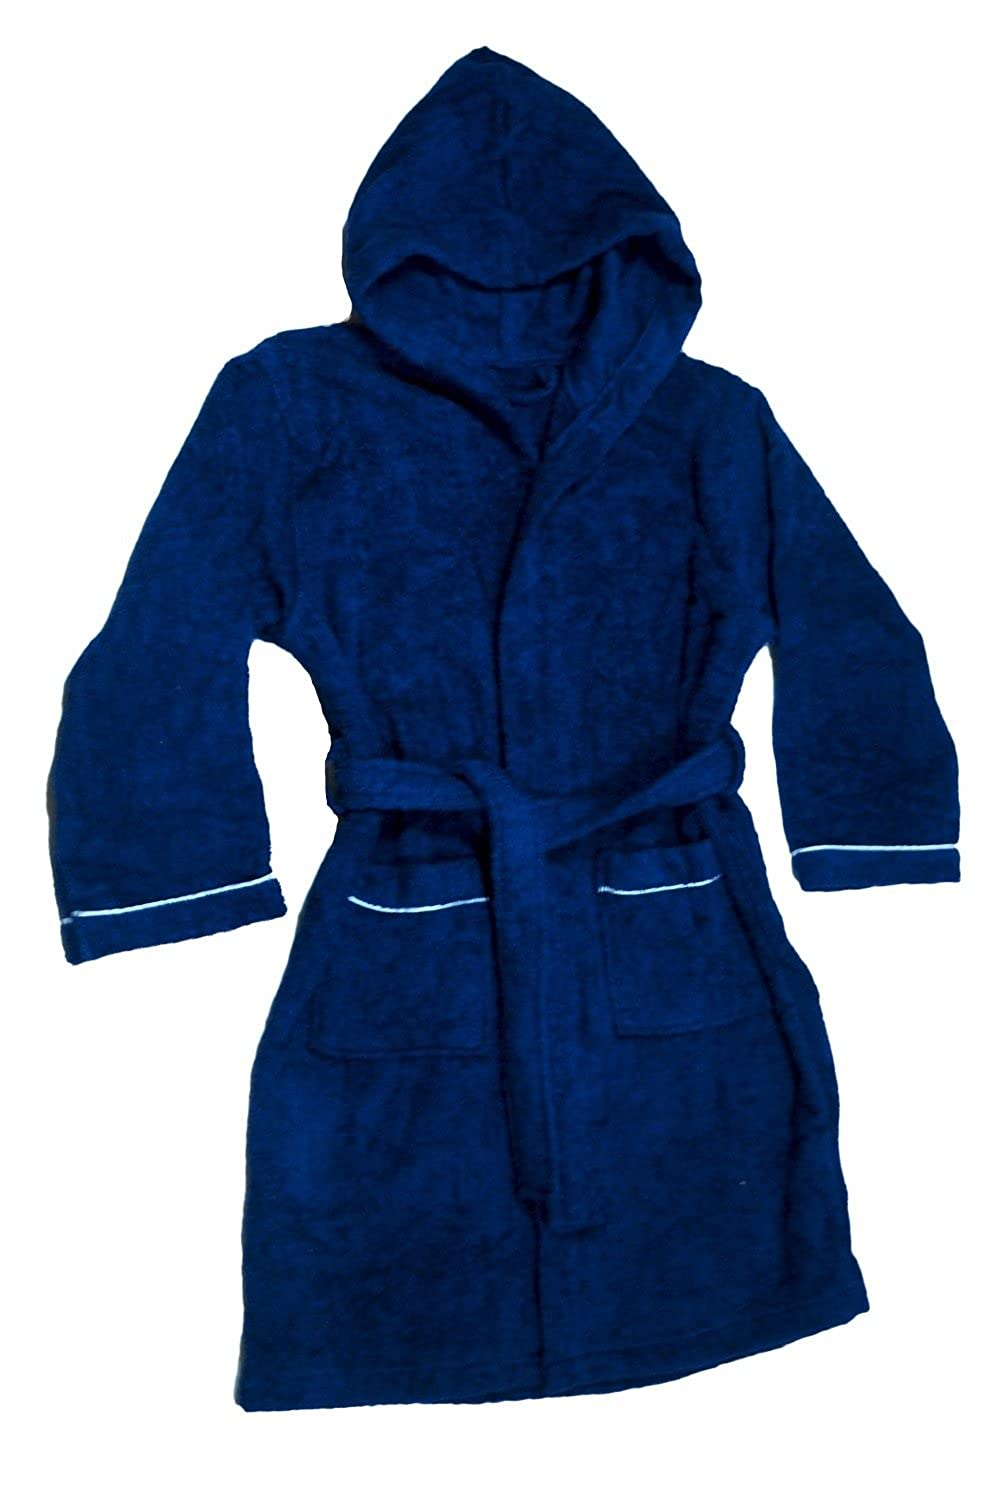 Boys Terry Cloth Hooded Bathrobe 100% Cotton Terry Coverup